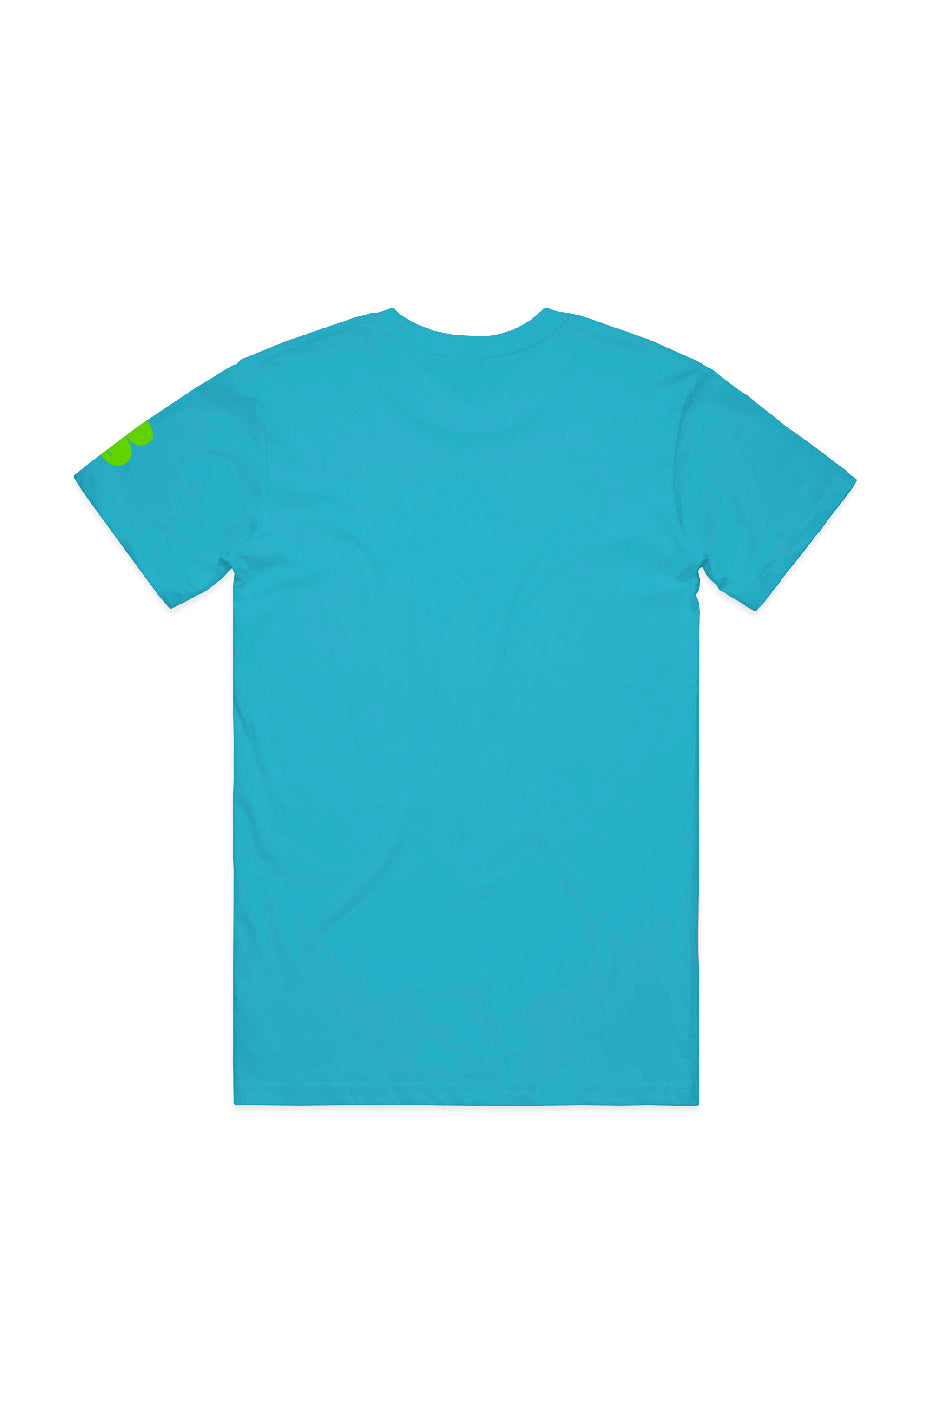 Baby Blue T-shirt - OG Graffiti Print